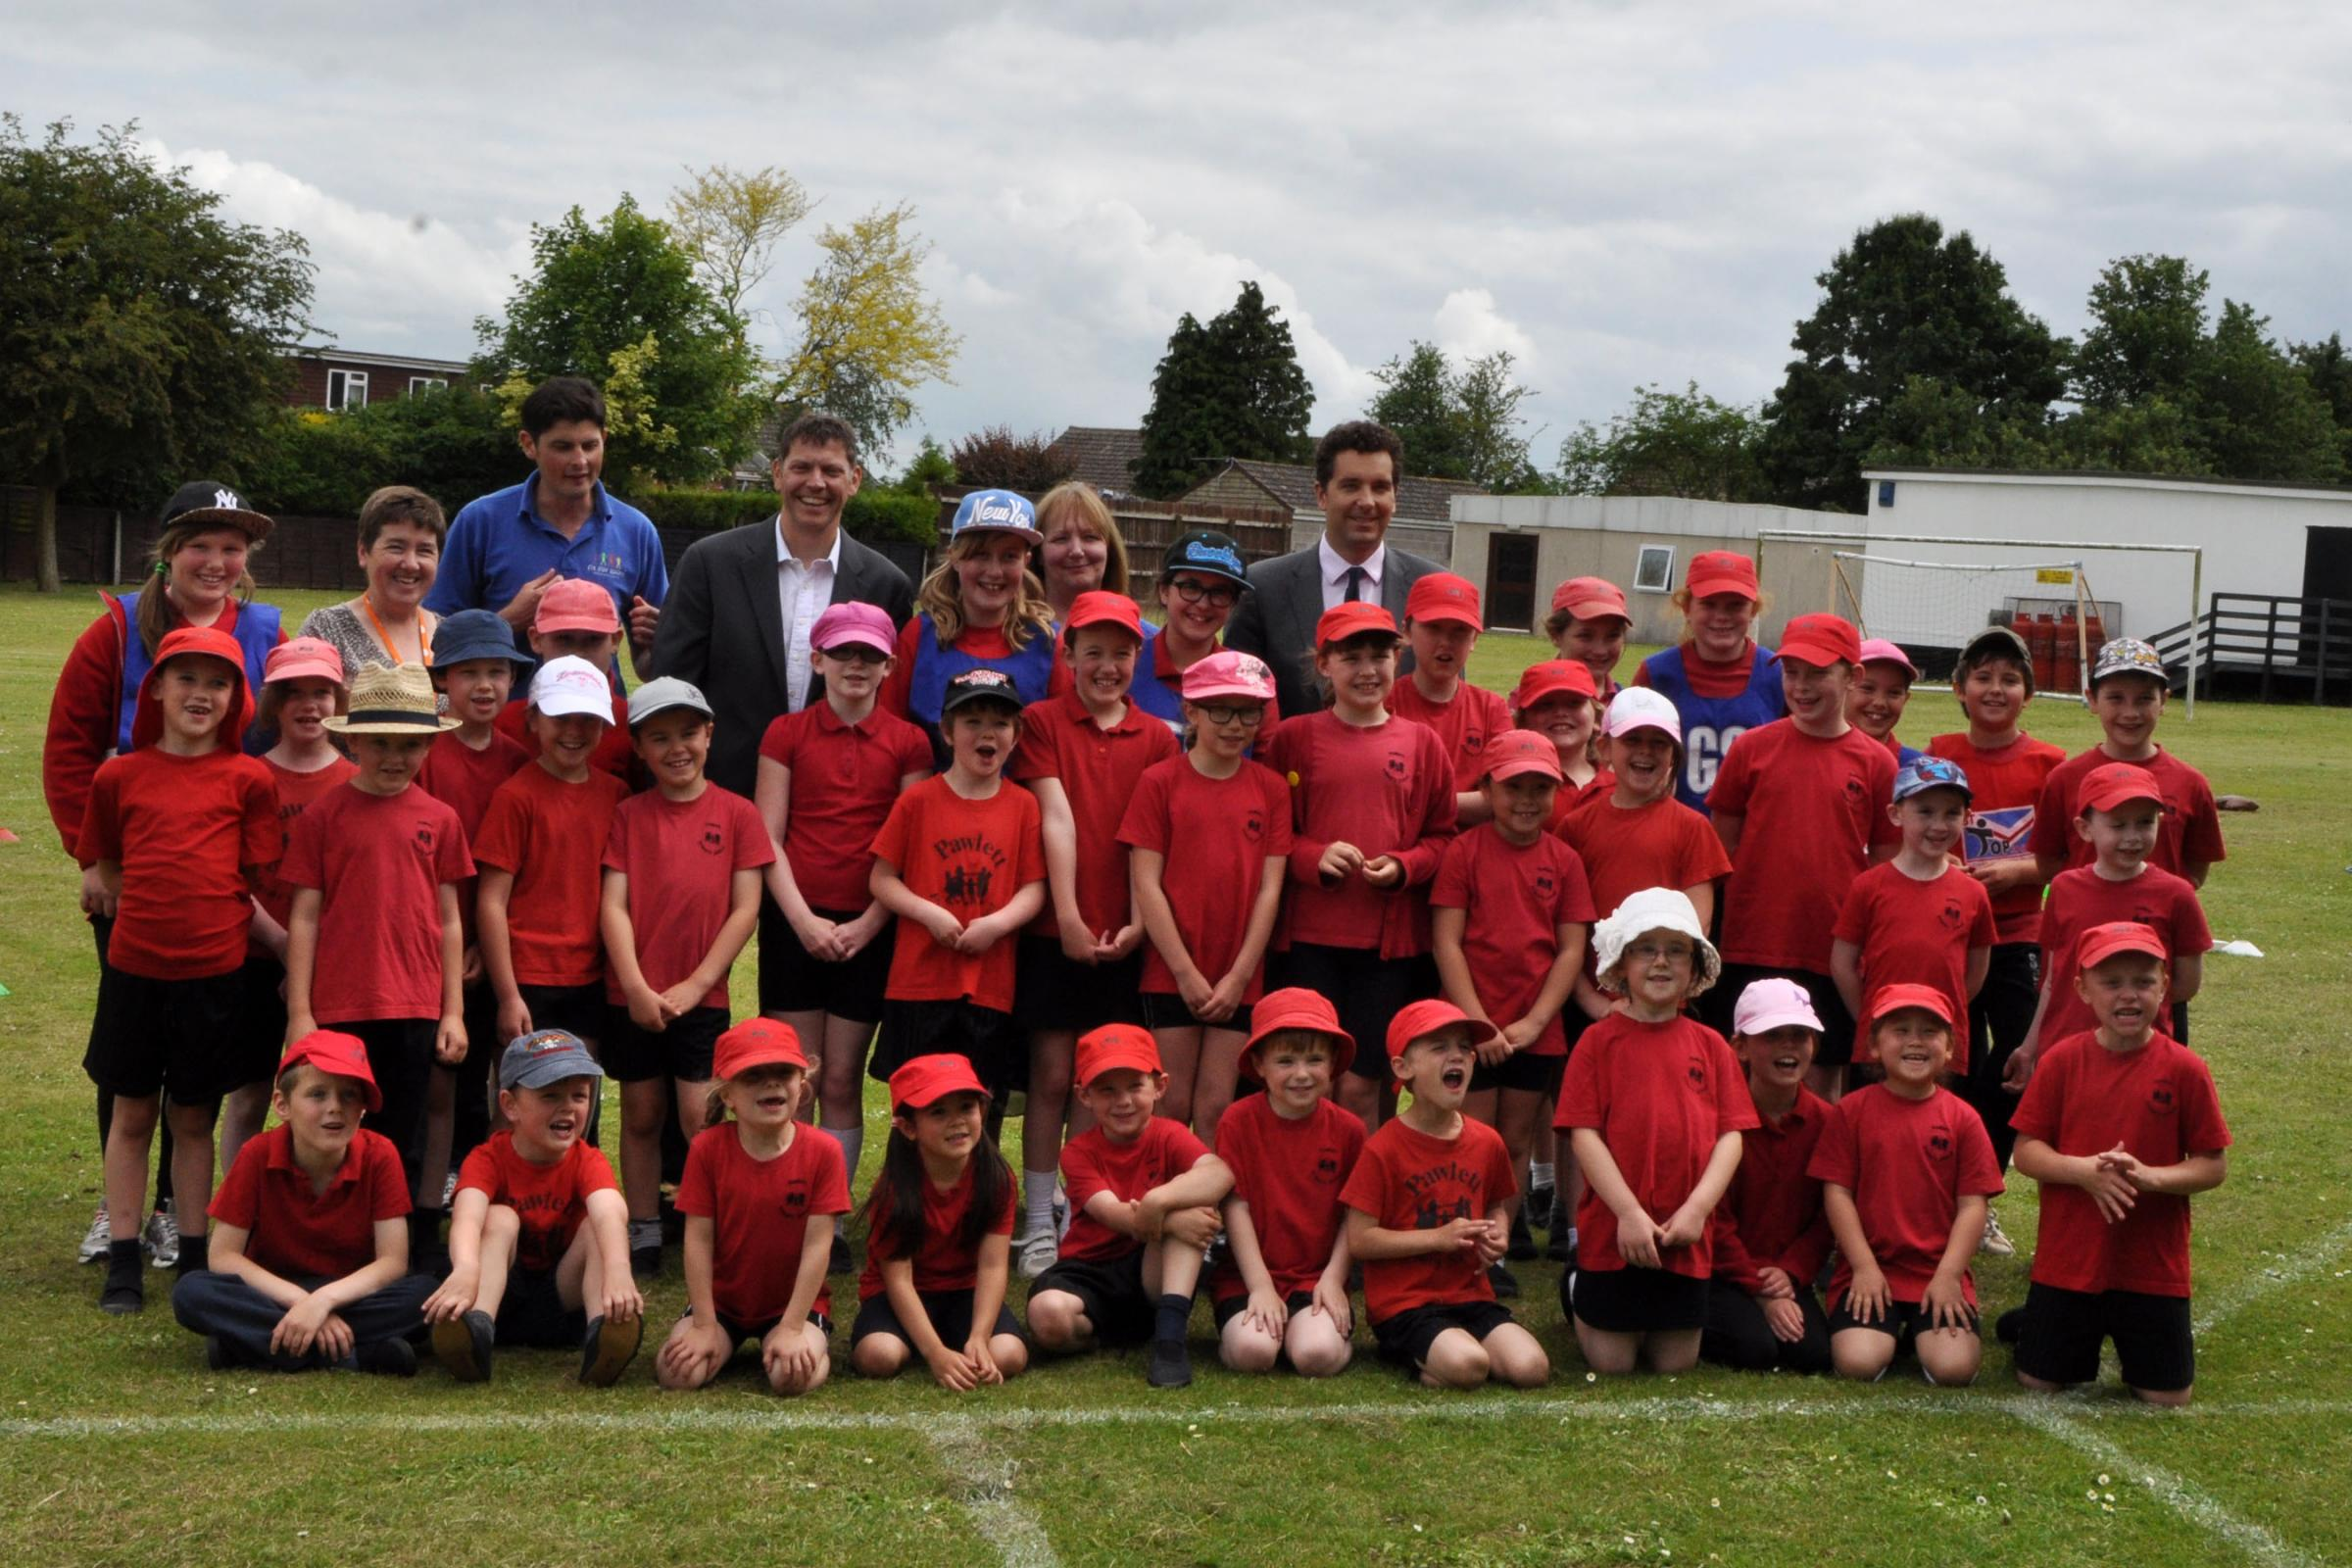 Minister visits Bridgwater school